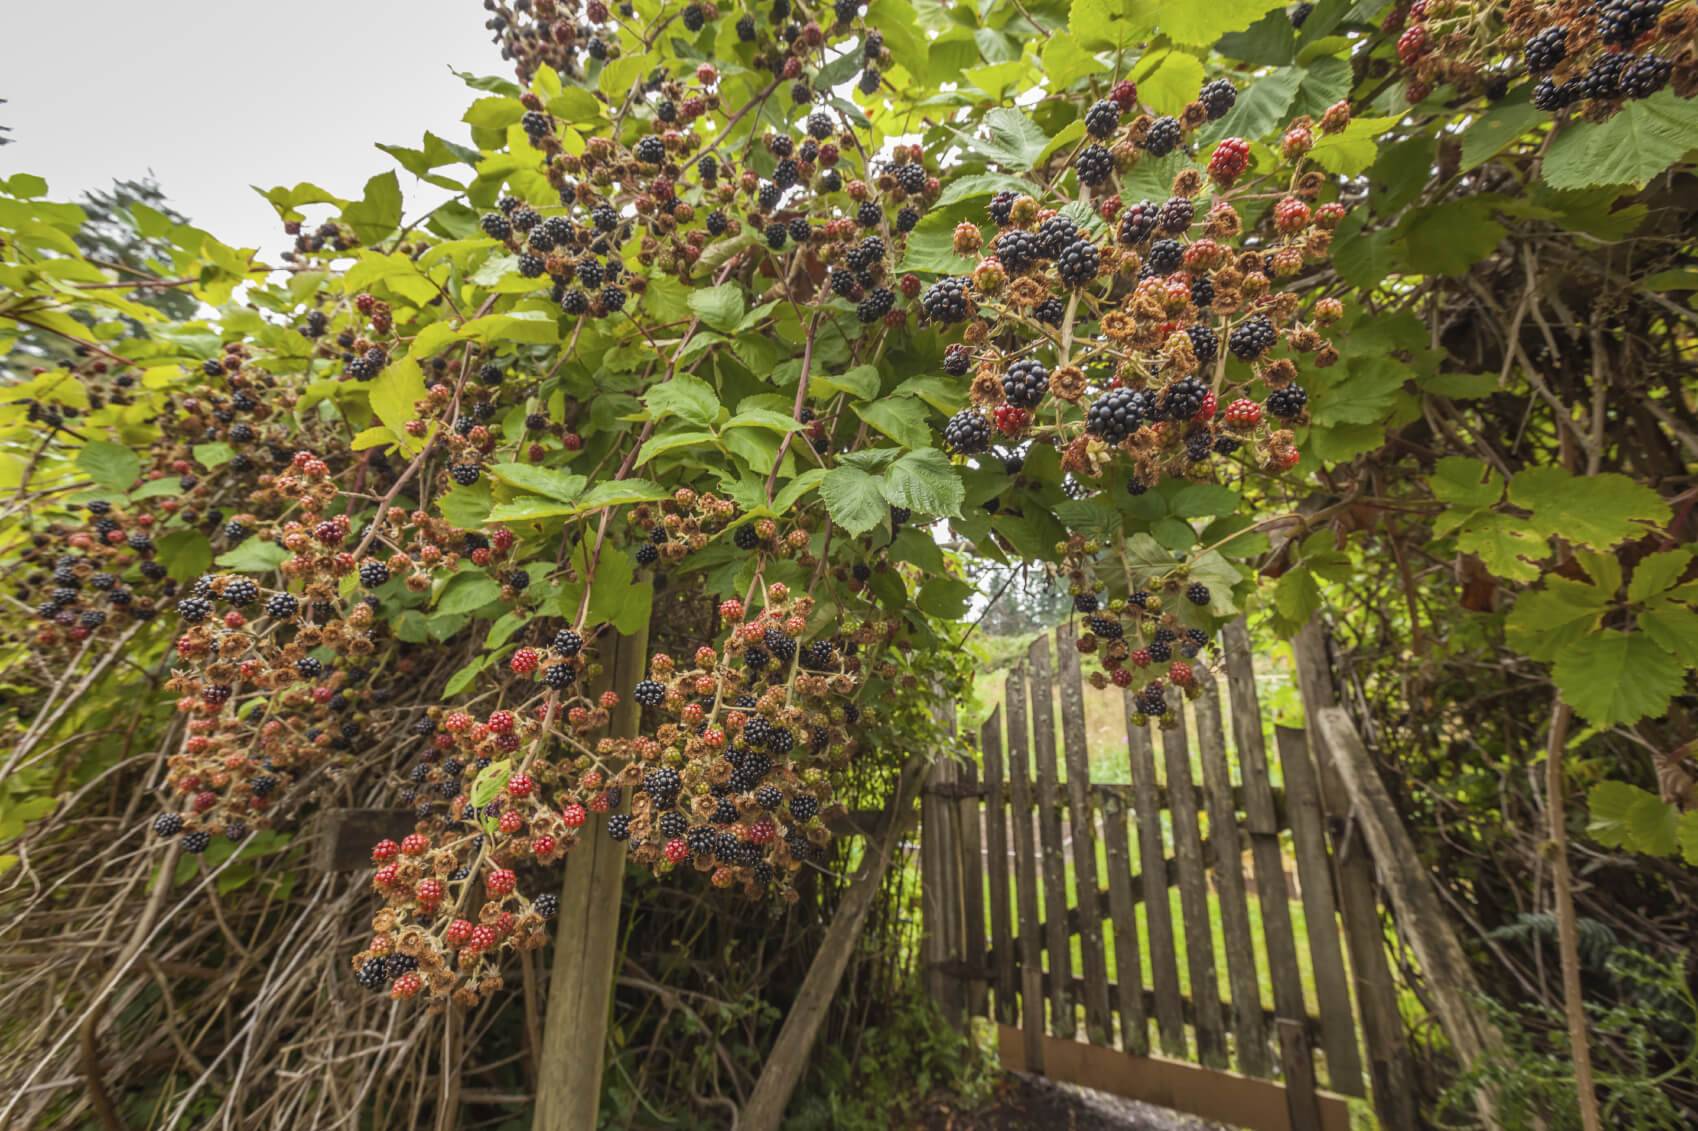 Some berry bushes produce a large quantity of berries. You will find yourself with more berries than you know what to do with in no time. Because berries freeze well you can save quite a few for later.